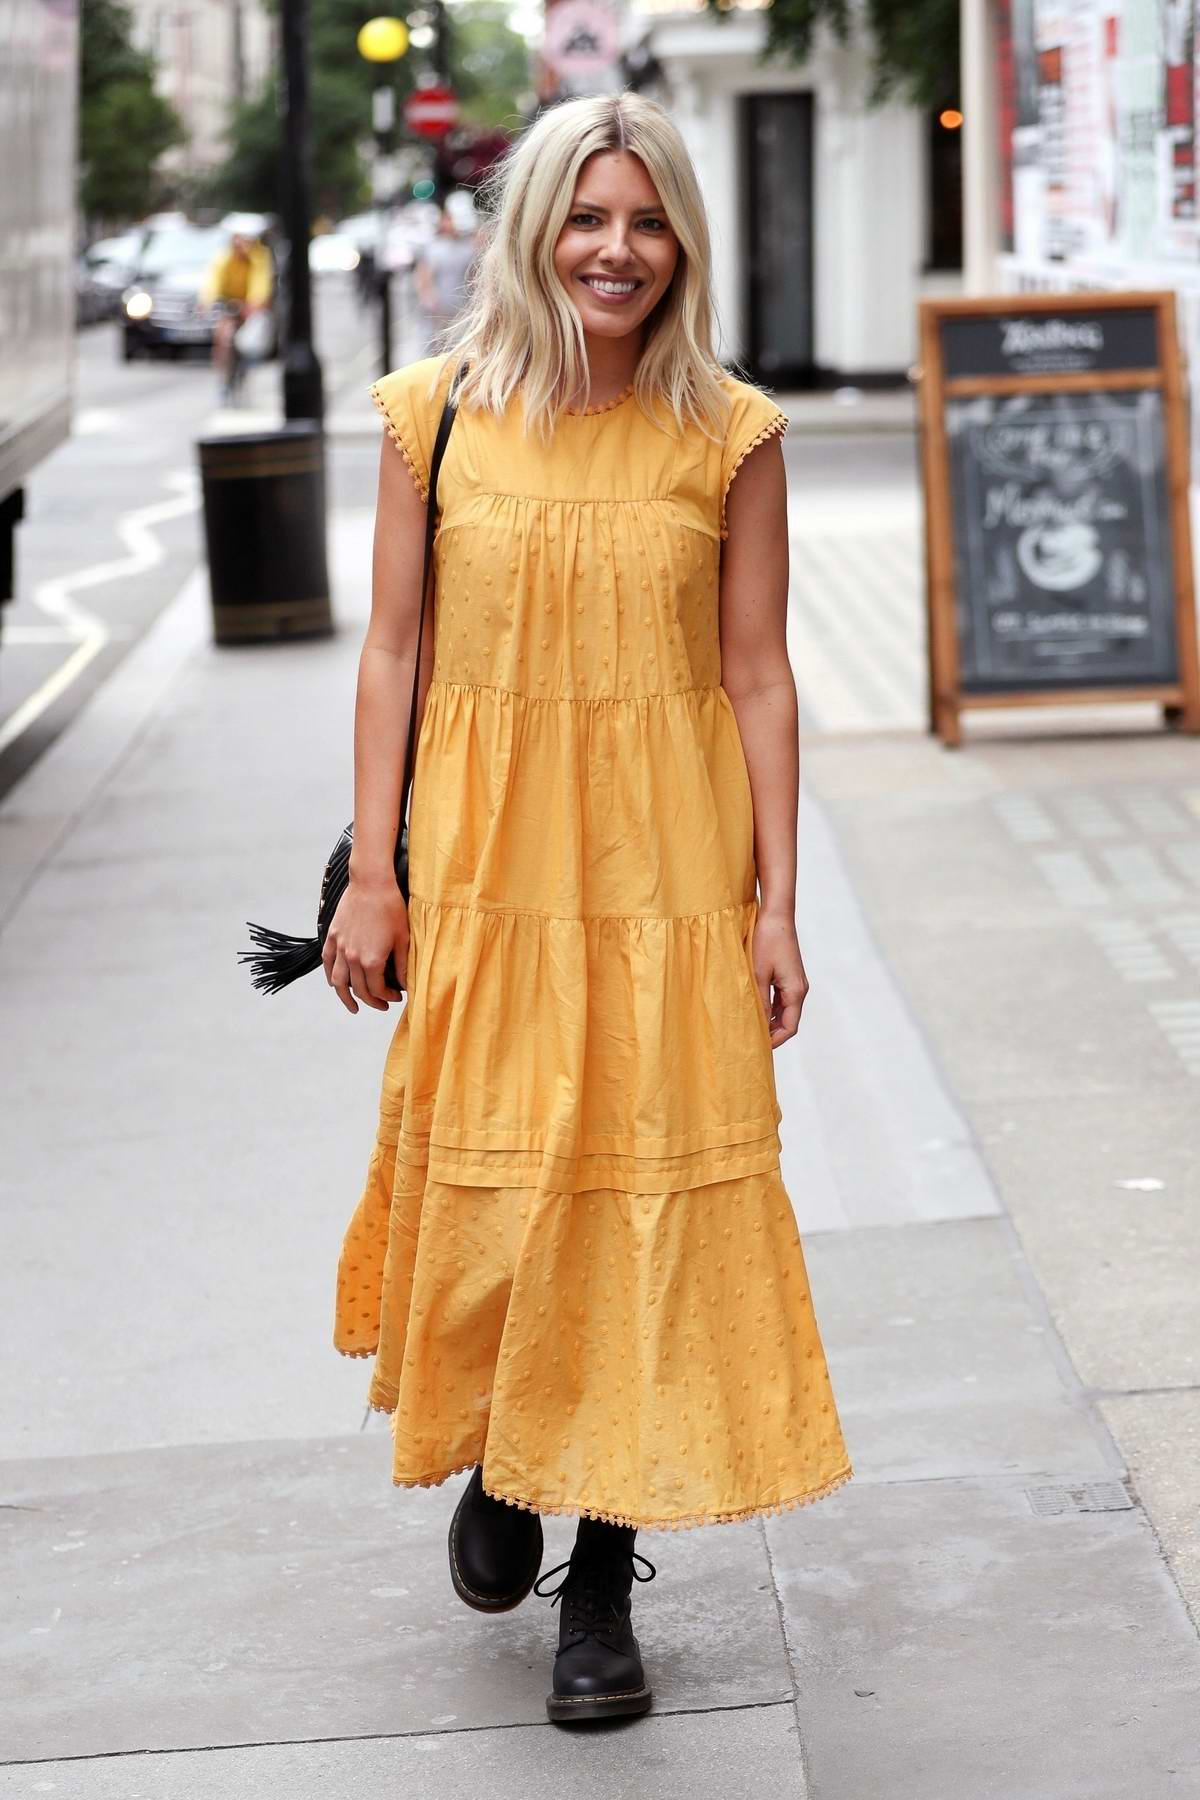 Mollie King seen wearing a yellow summer dress as she exits Juice bar in Soho, London, UK